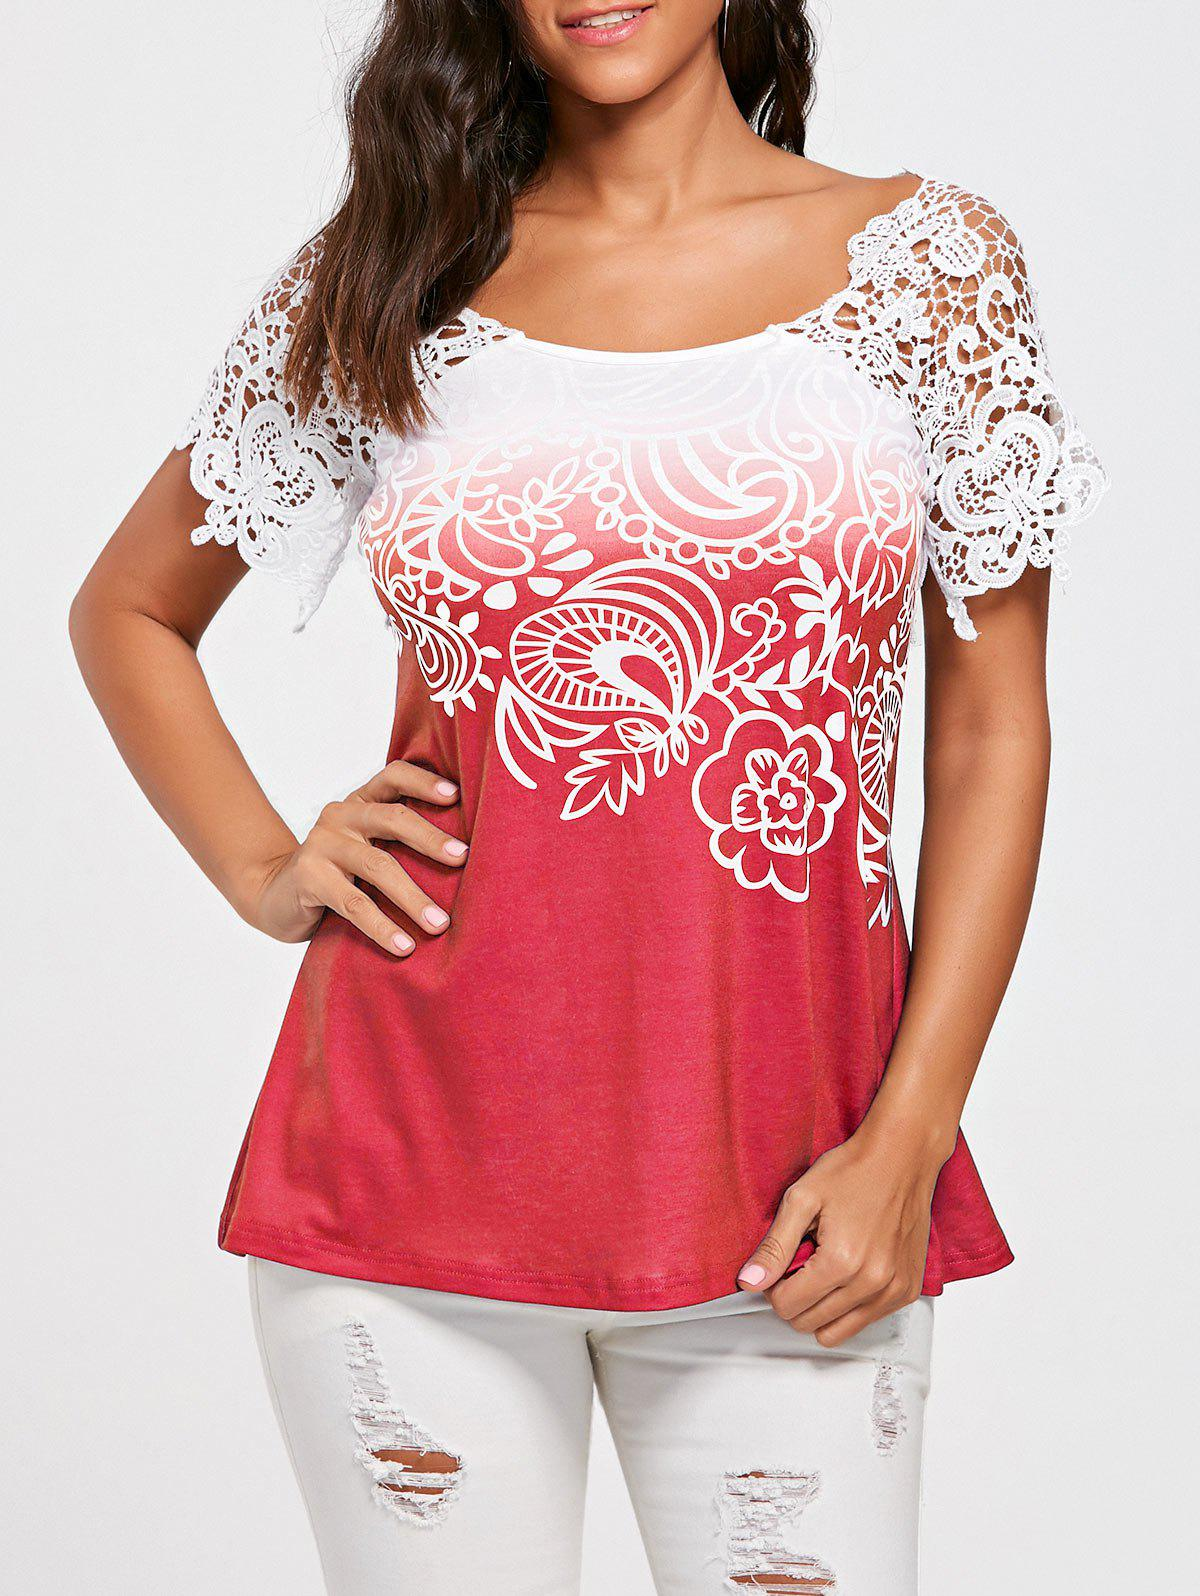 Floral Lace Trim Cutwork T-shirtWOMEN<br><br>Size: L; Color: WATERMELON RED; Material: Polyester,Spandex; Shirt Length: Regular; Sleeve Length: Short; Collar: Scoop Neck; Style: Fashion; Season: Summer; Embellishment: Lace; Pattern Type: Floral; Weight: 0.2300kg; Package Contents: 1 x T-shirt;